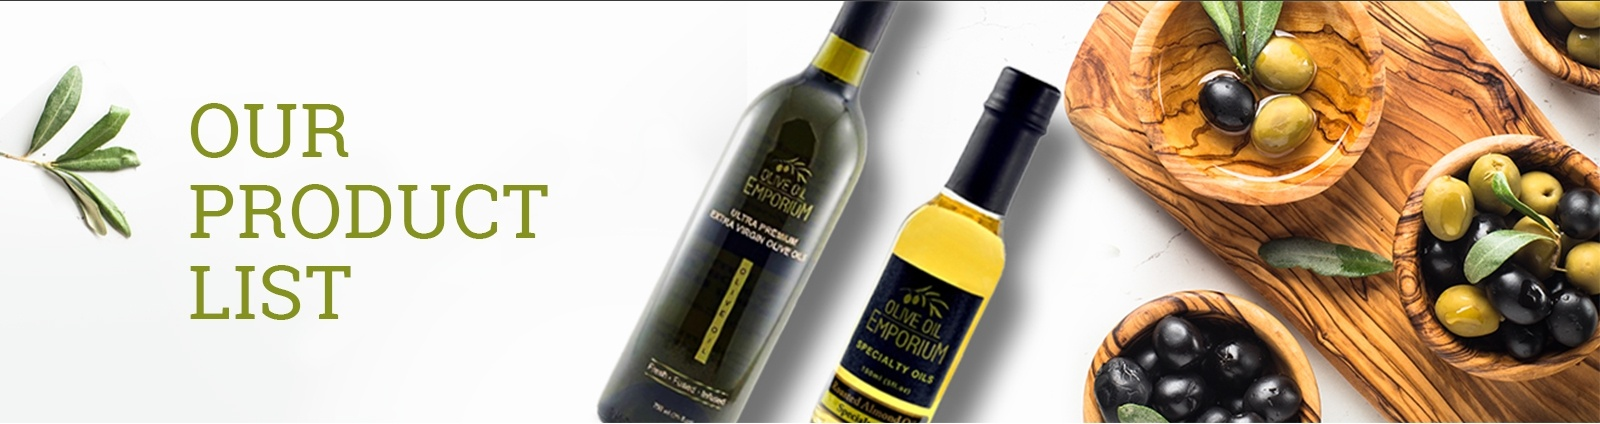 Our Product List - Olive Oil Emporium | Olive Oil and Vinegar Tasting Bar - Toronto